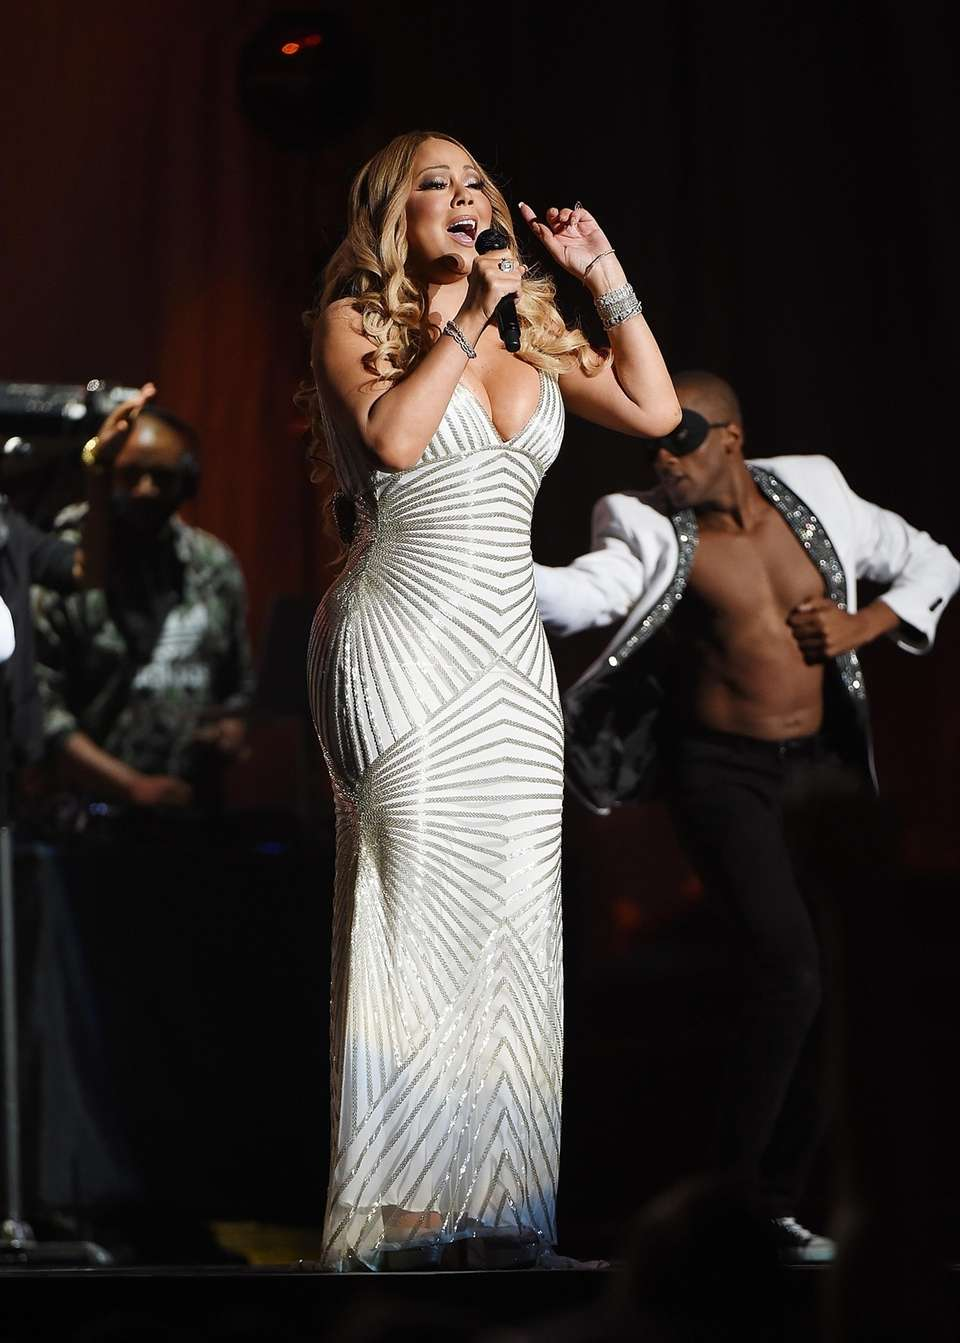 Mariah Carey performs at Madison Square Garden in